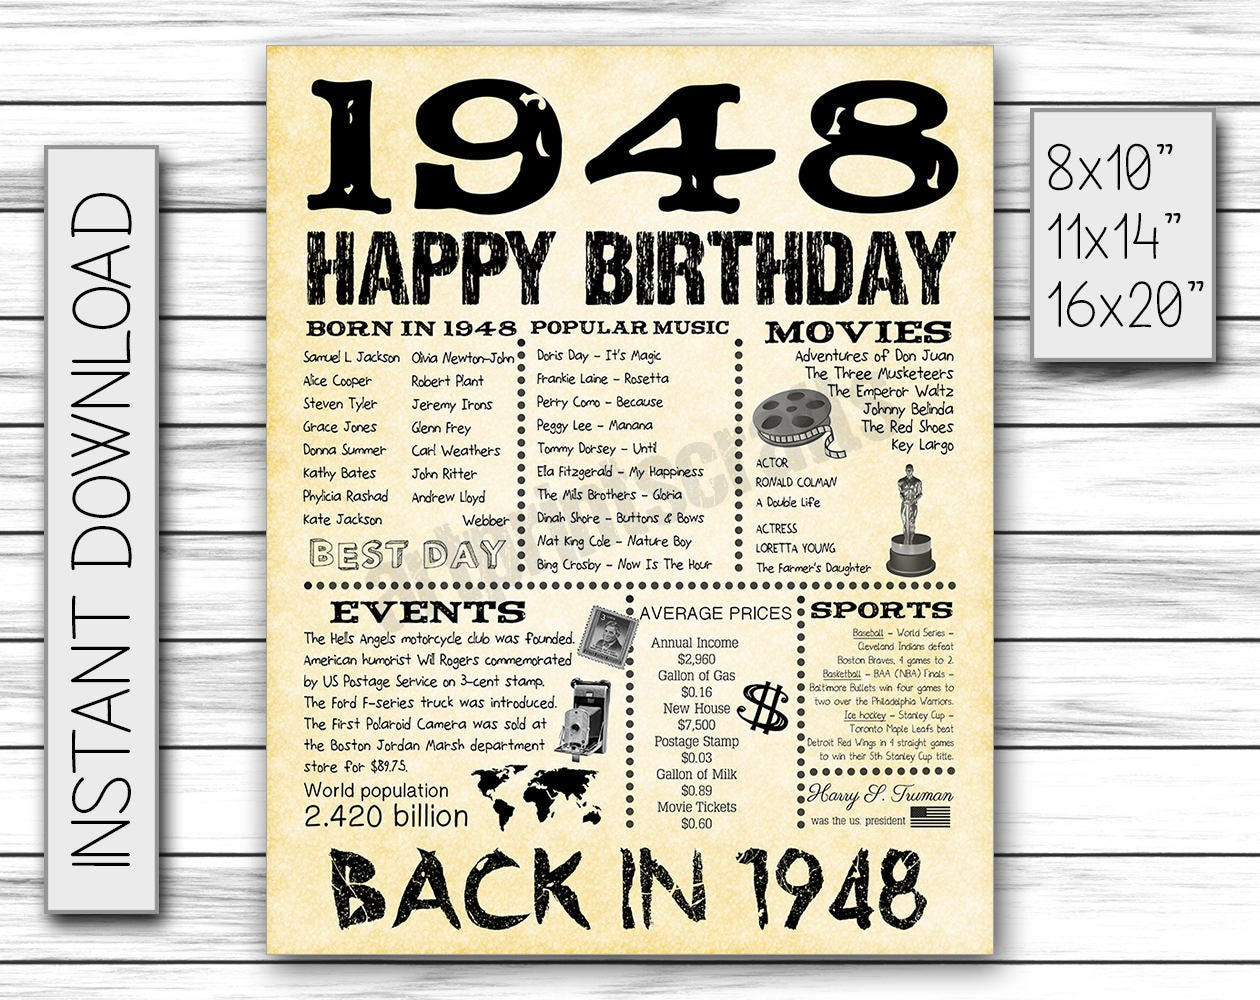 70th Birthday 1948 Fun Facts For Husband Gift